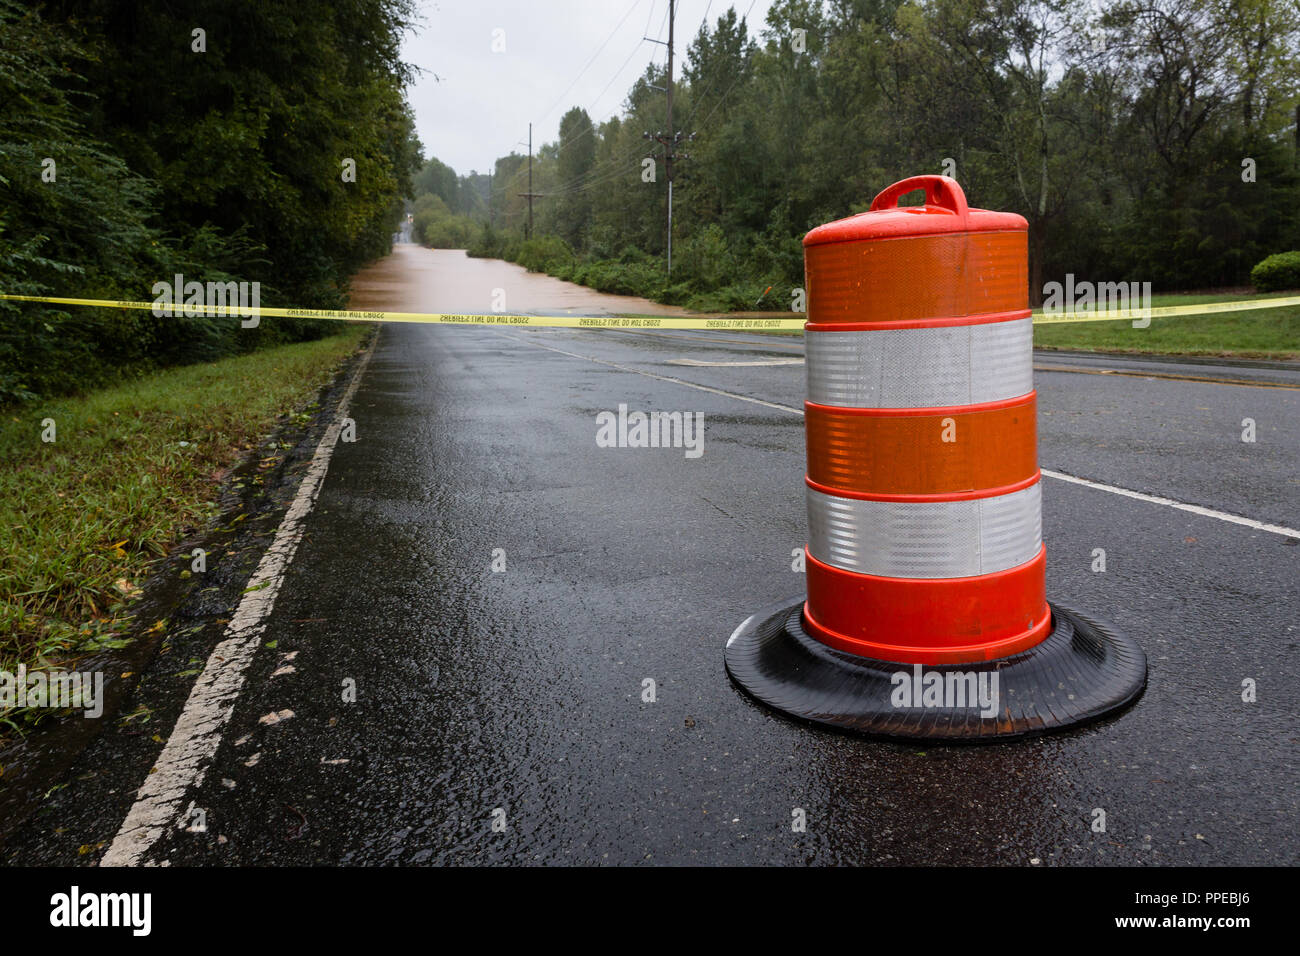 Waxhaw, North Carolina - September 16, 2018: Police barricade the road after a bridge is washed out by rain from Hurricane Florence - Stock Image